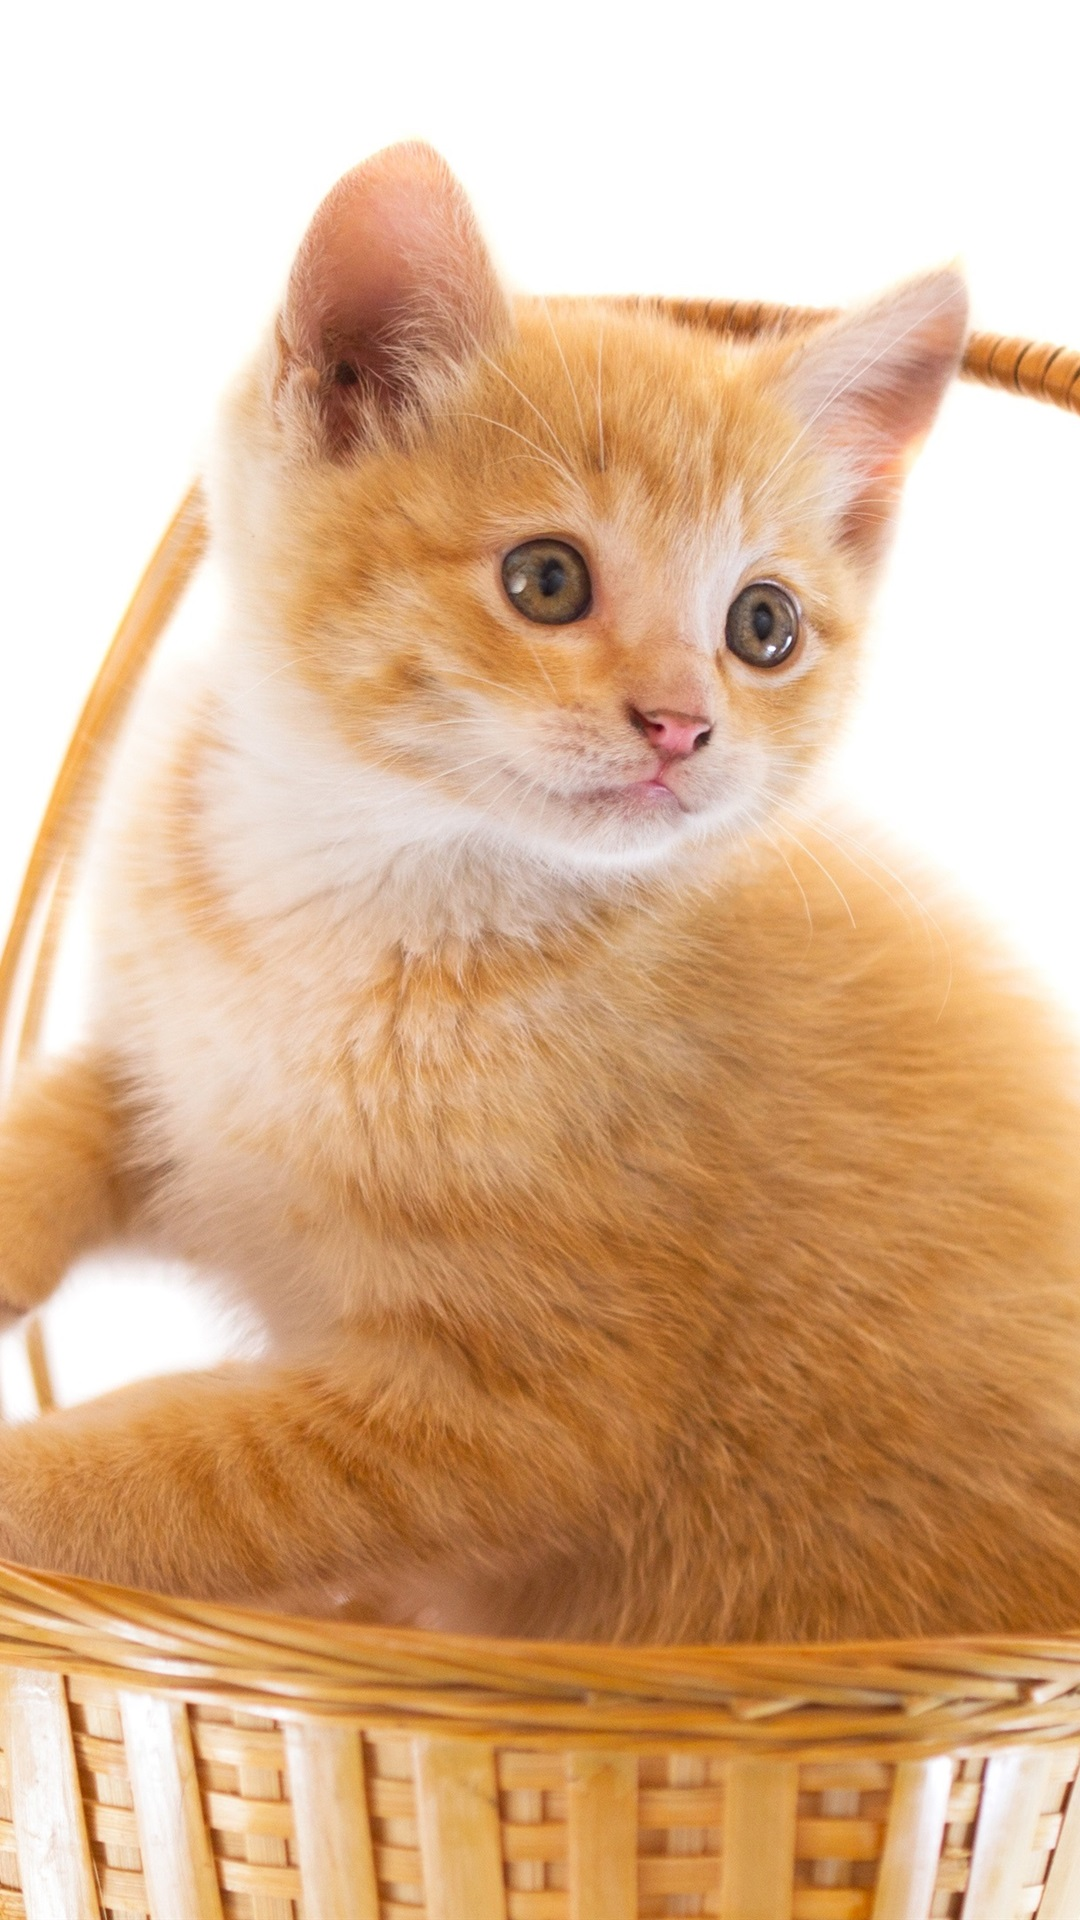 Cute Cats and Kittens Desktop Wallpapers Download at